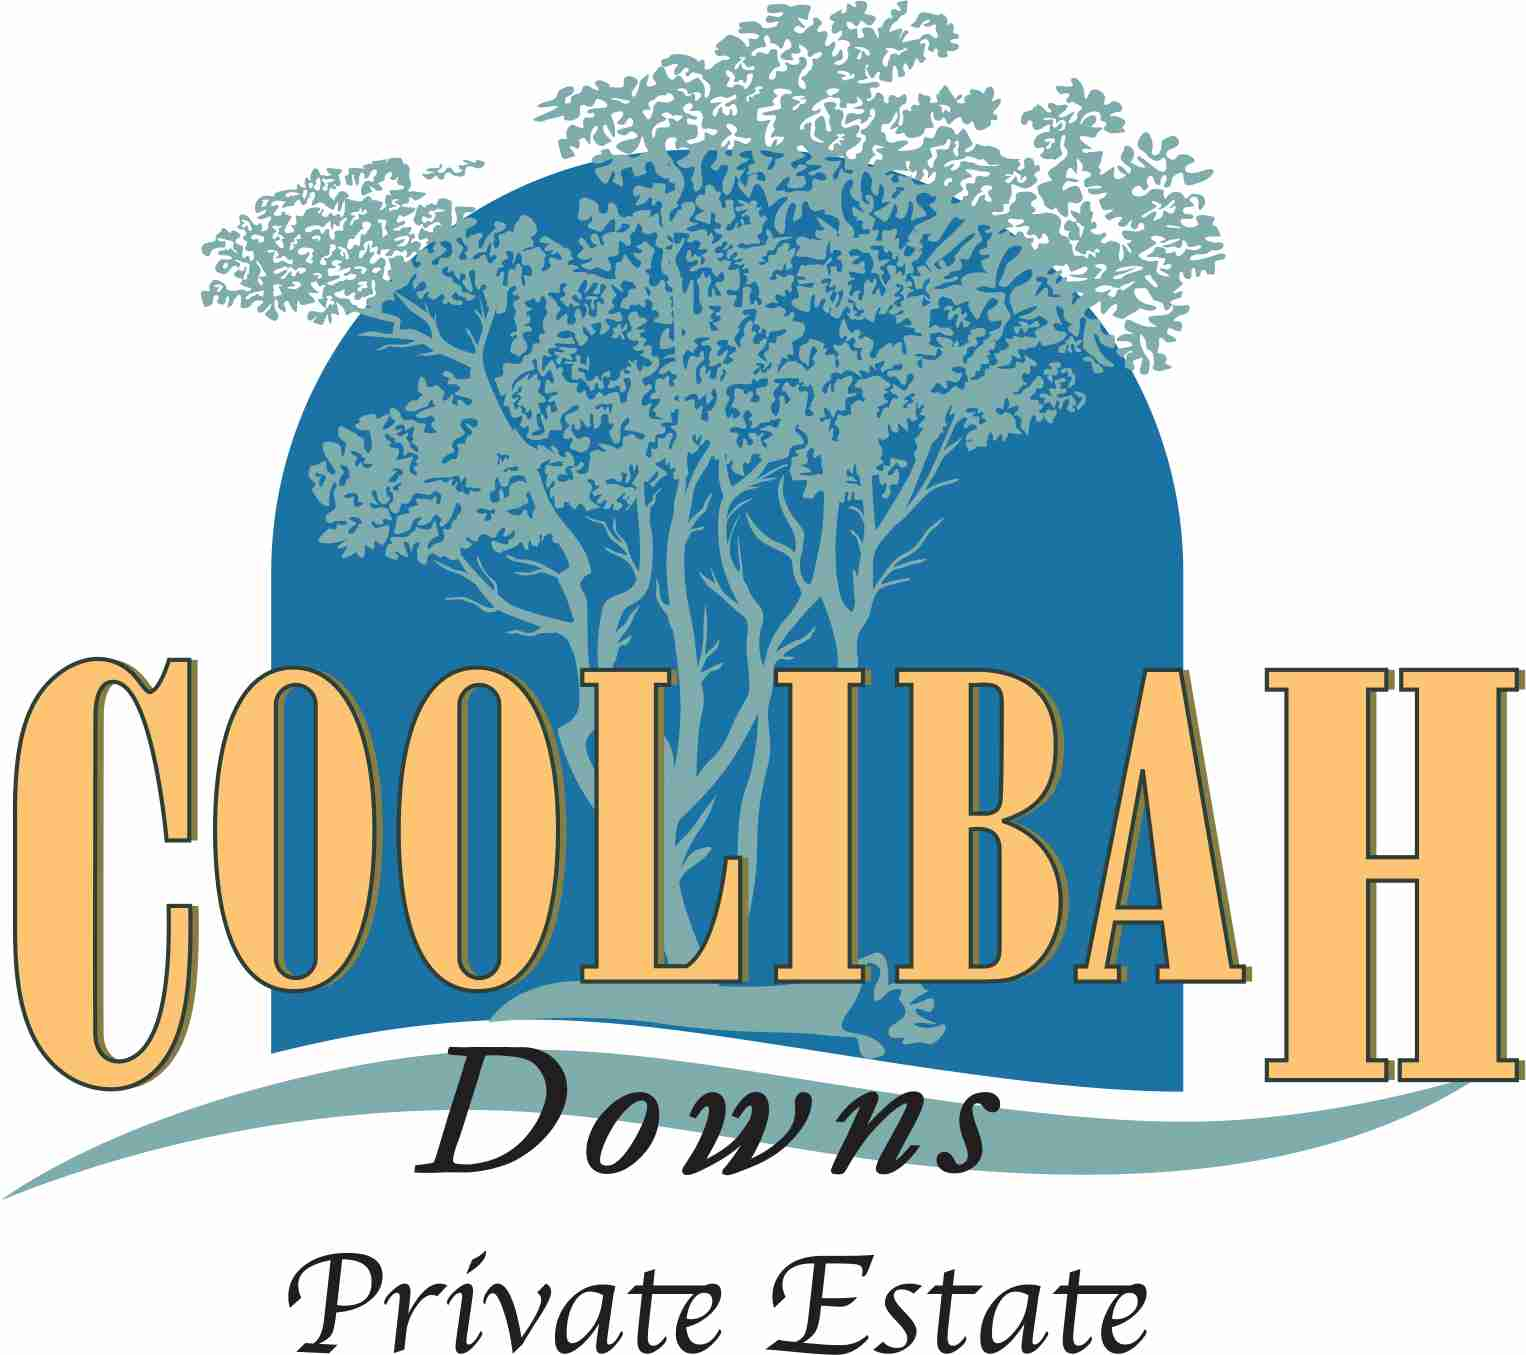 Coolibah Downs Private Estate